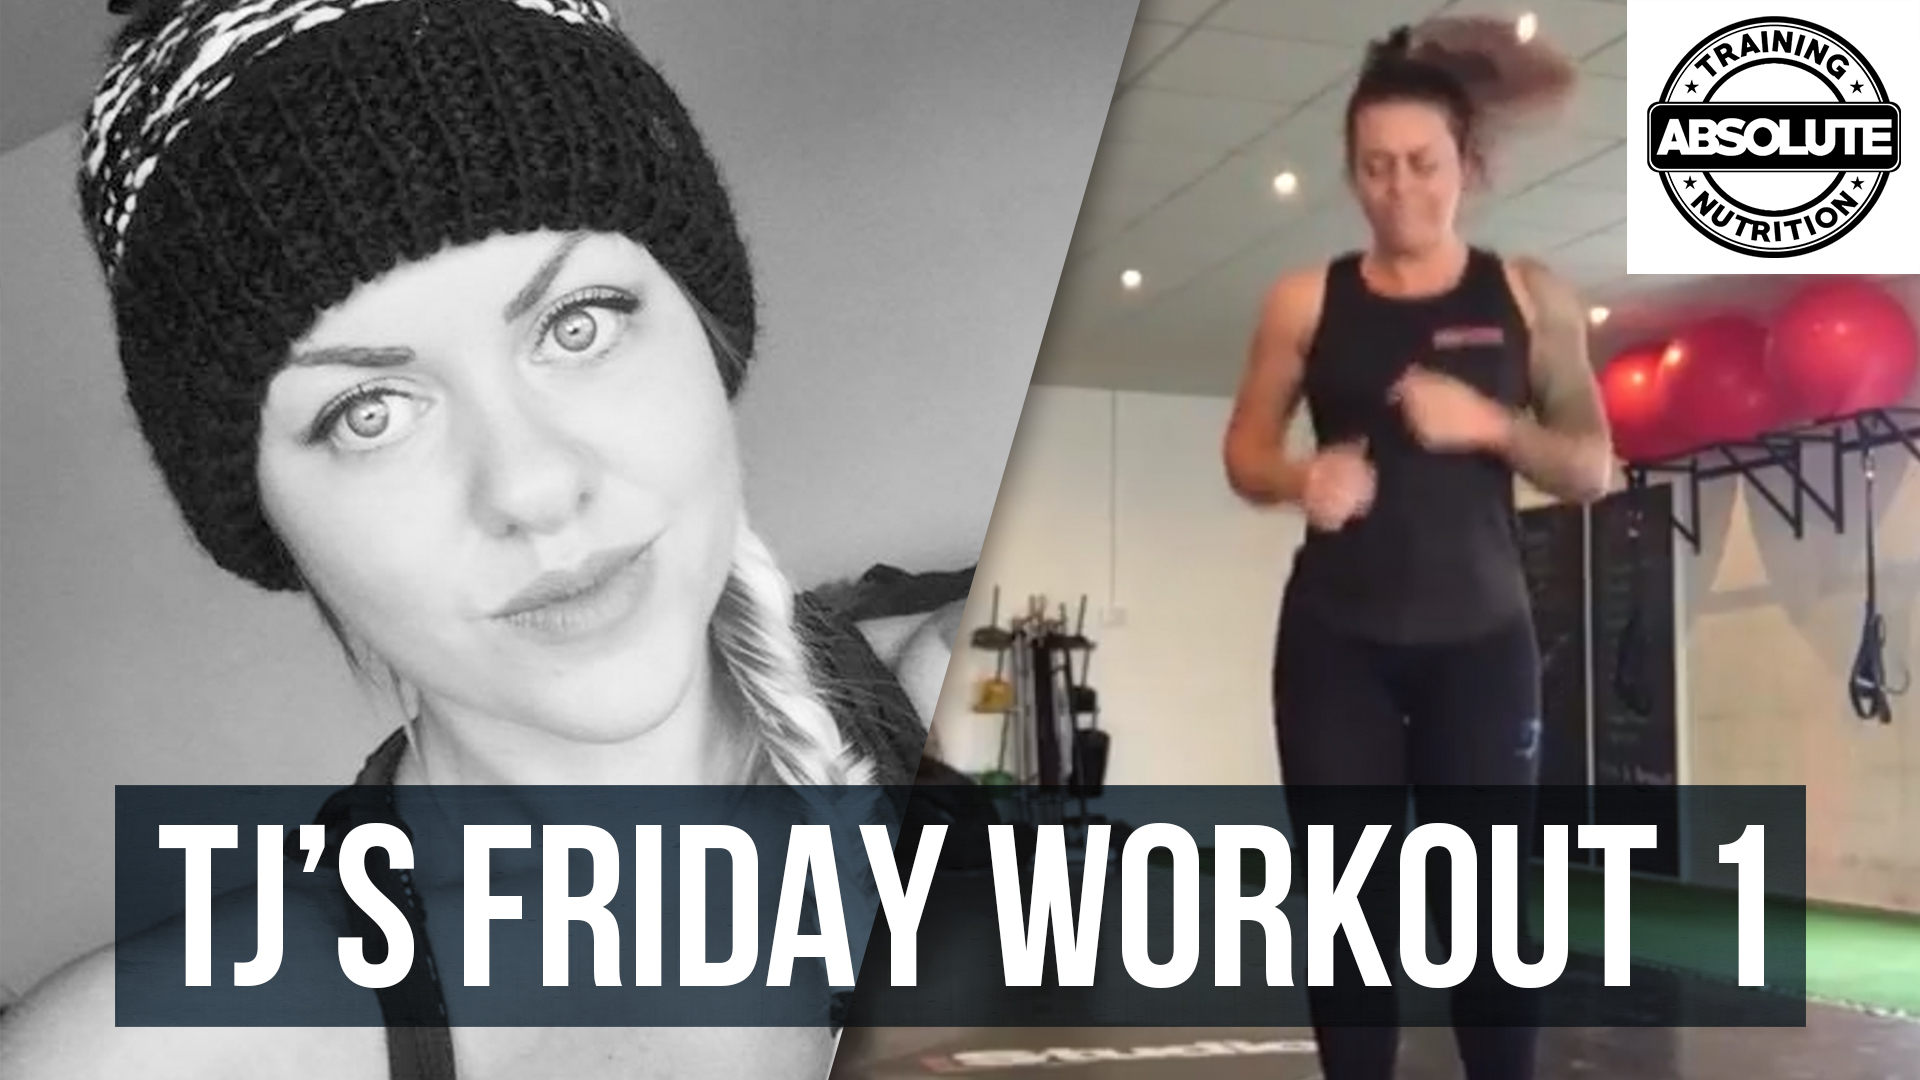 TJ Friday Workout 1